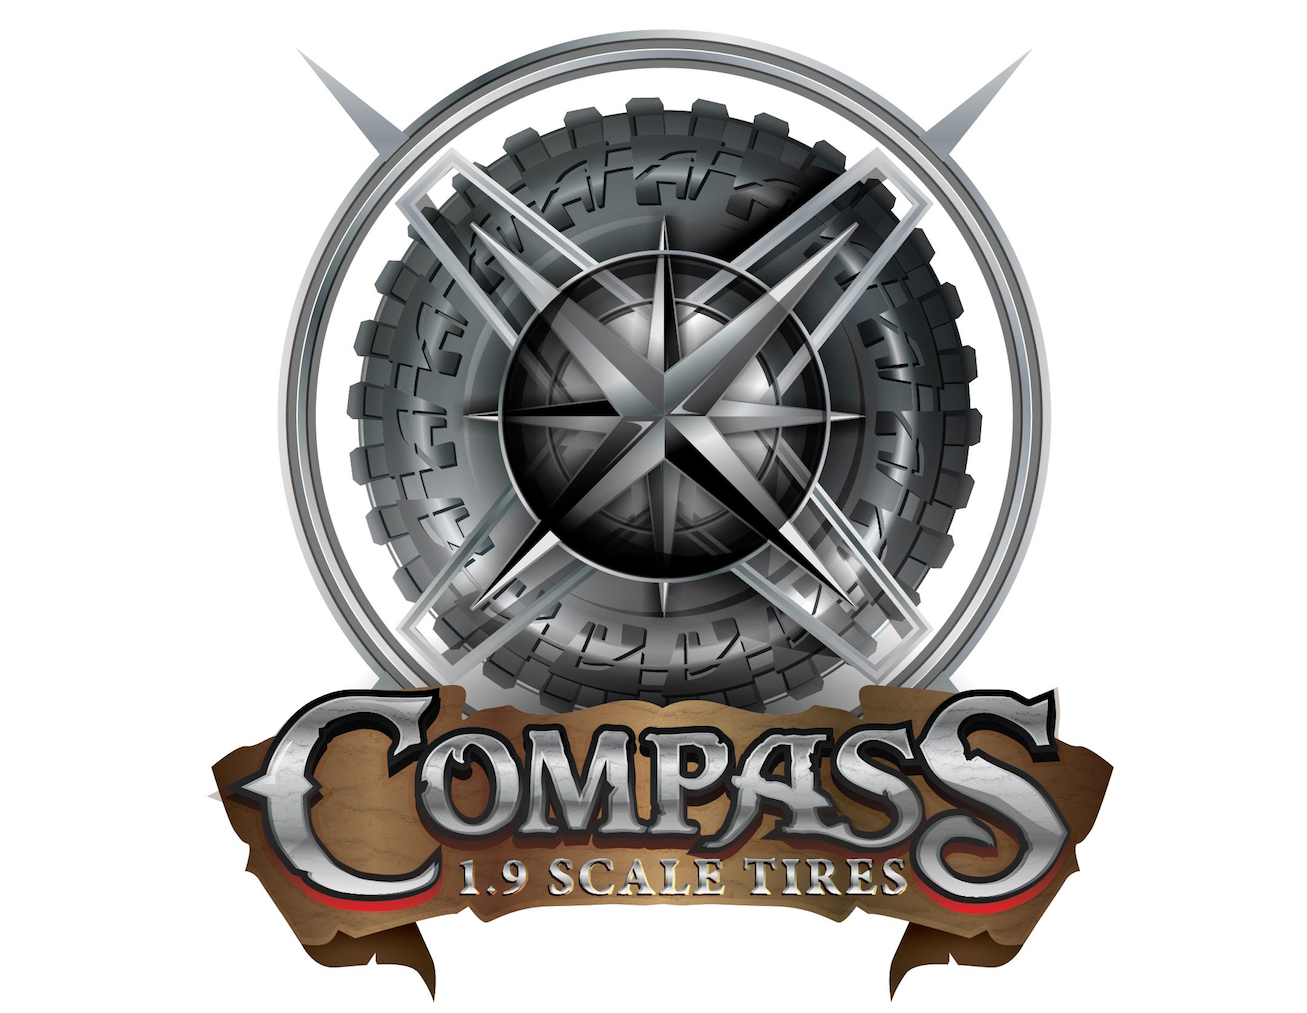 compass1.png